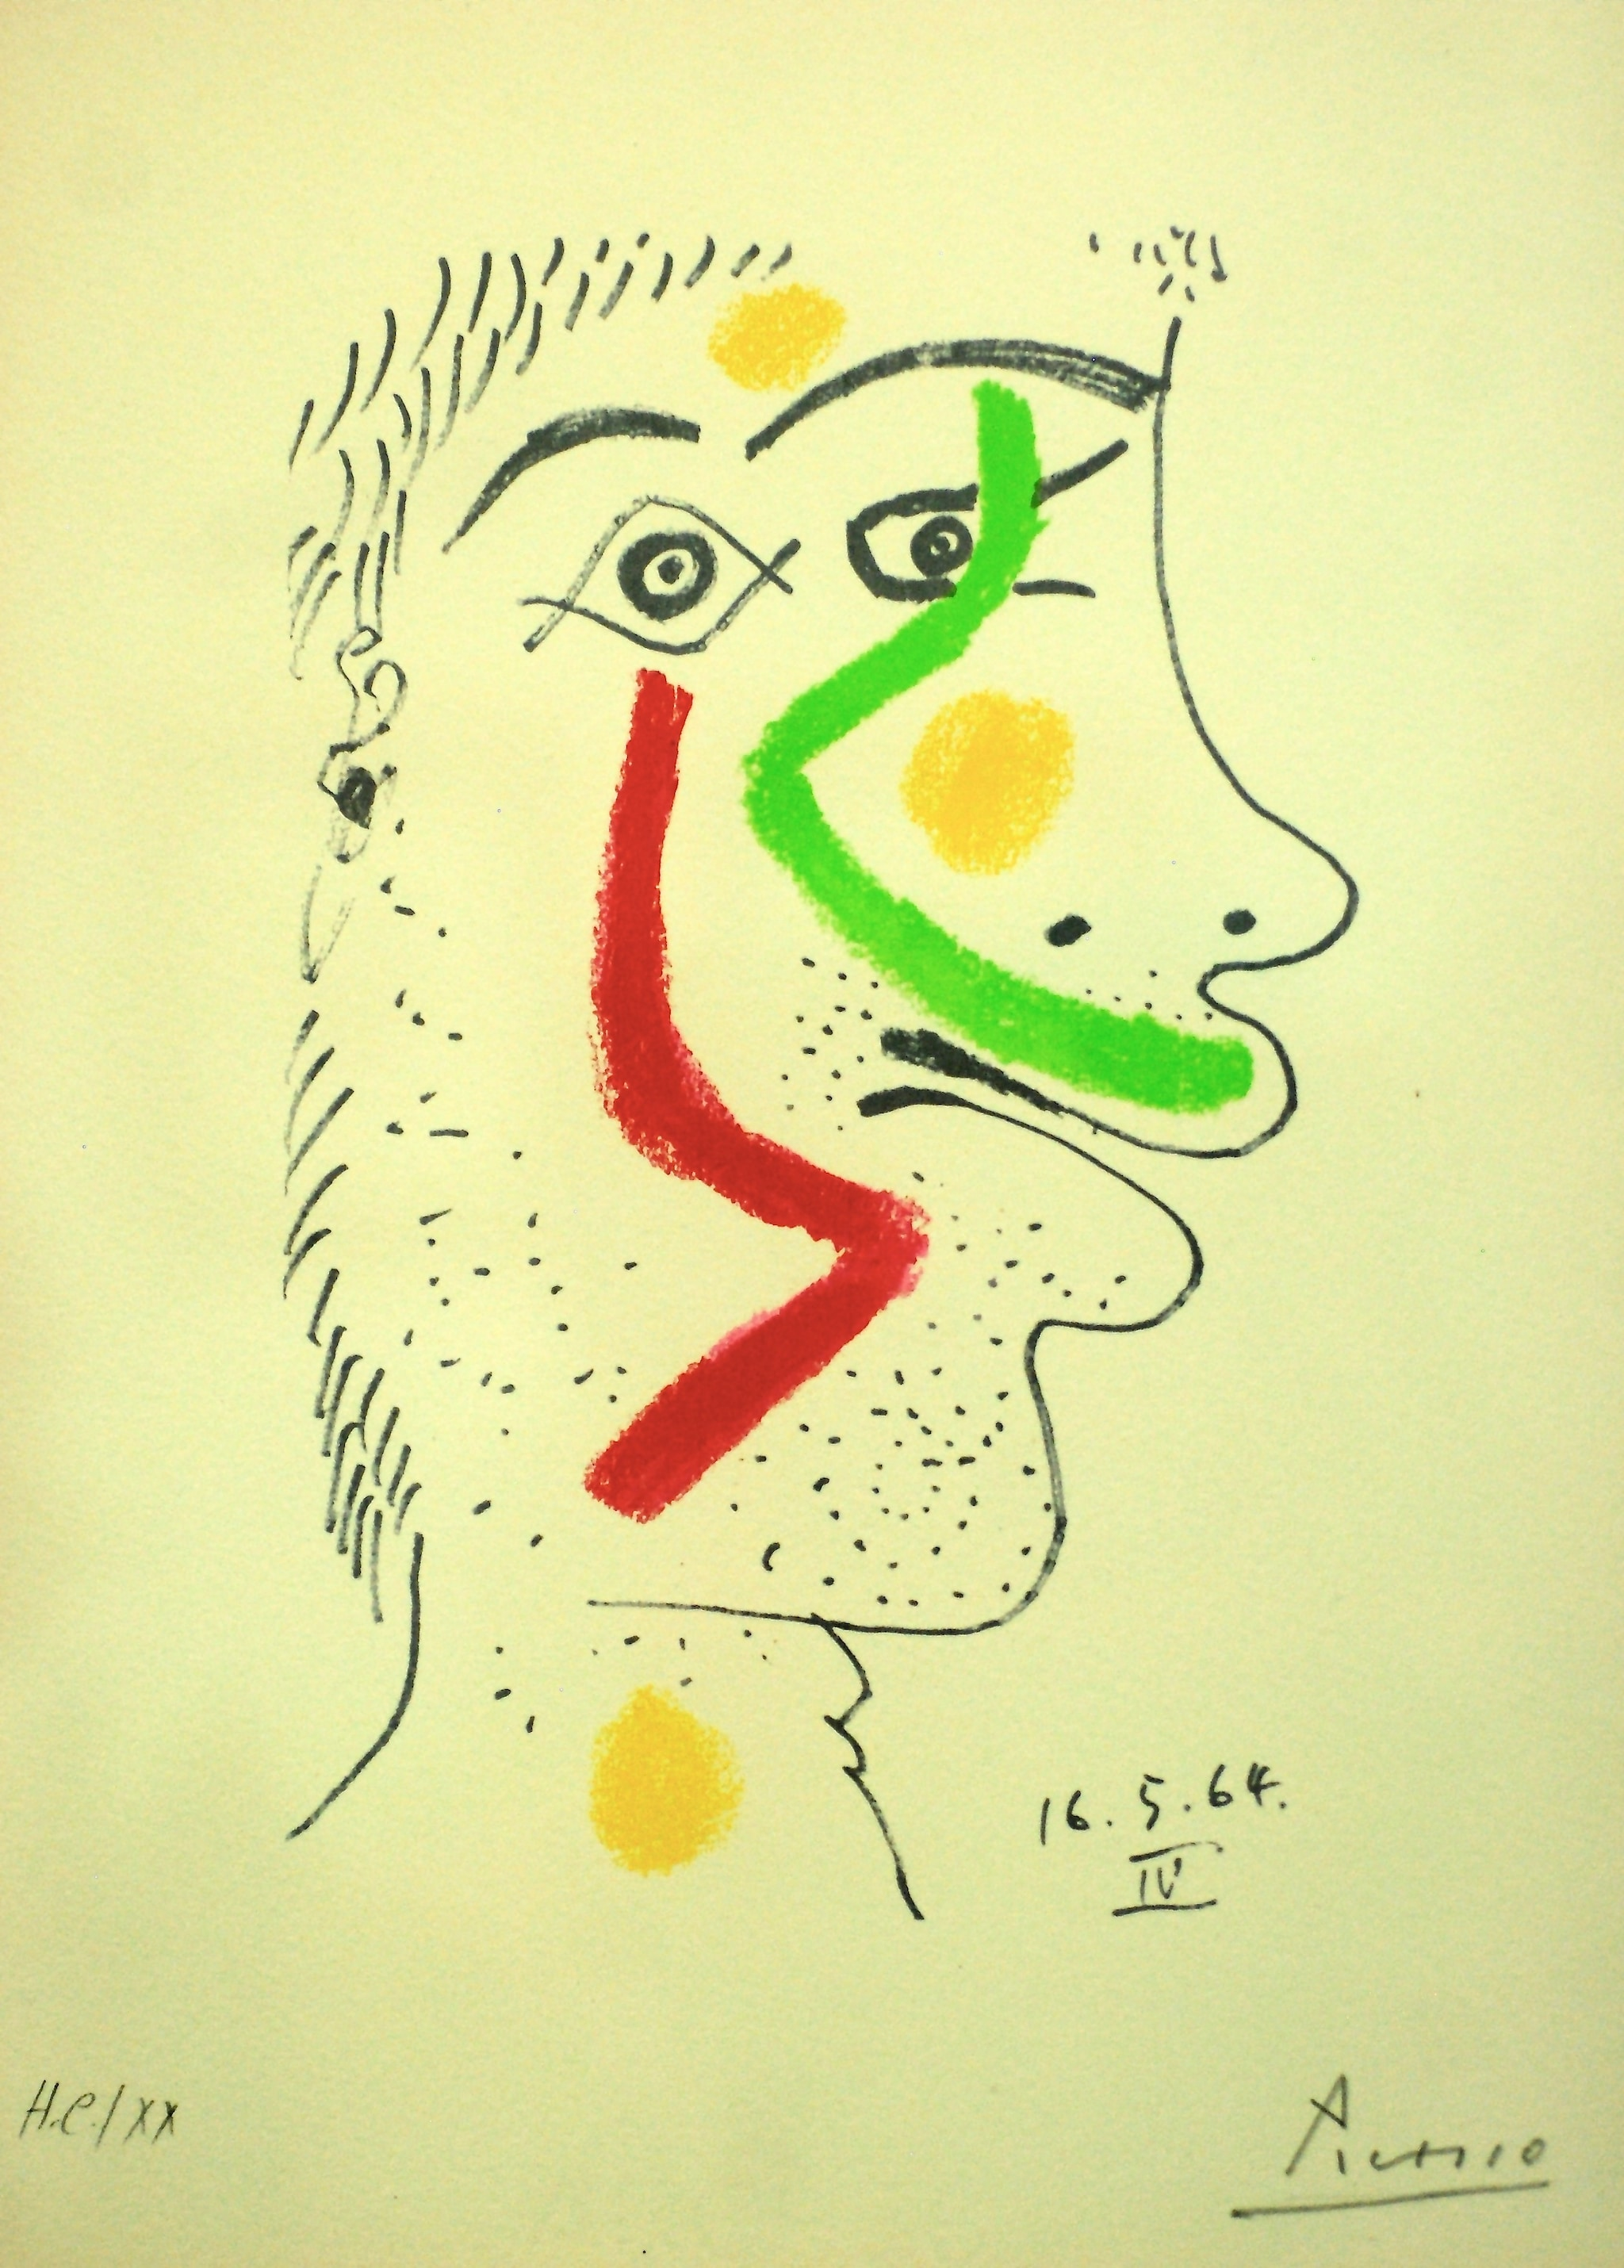 A Picasso drawing dated May 16, 1964.